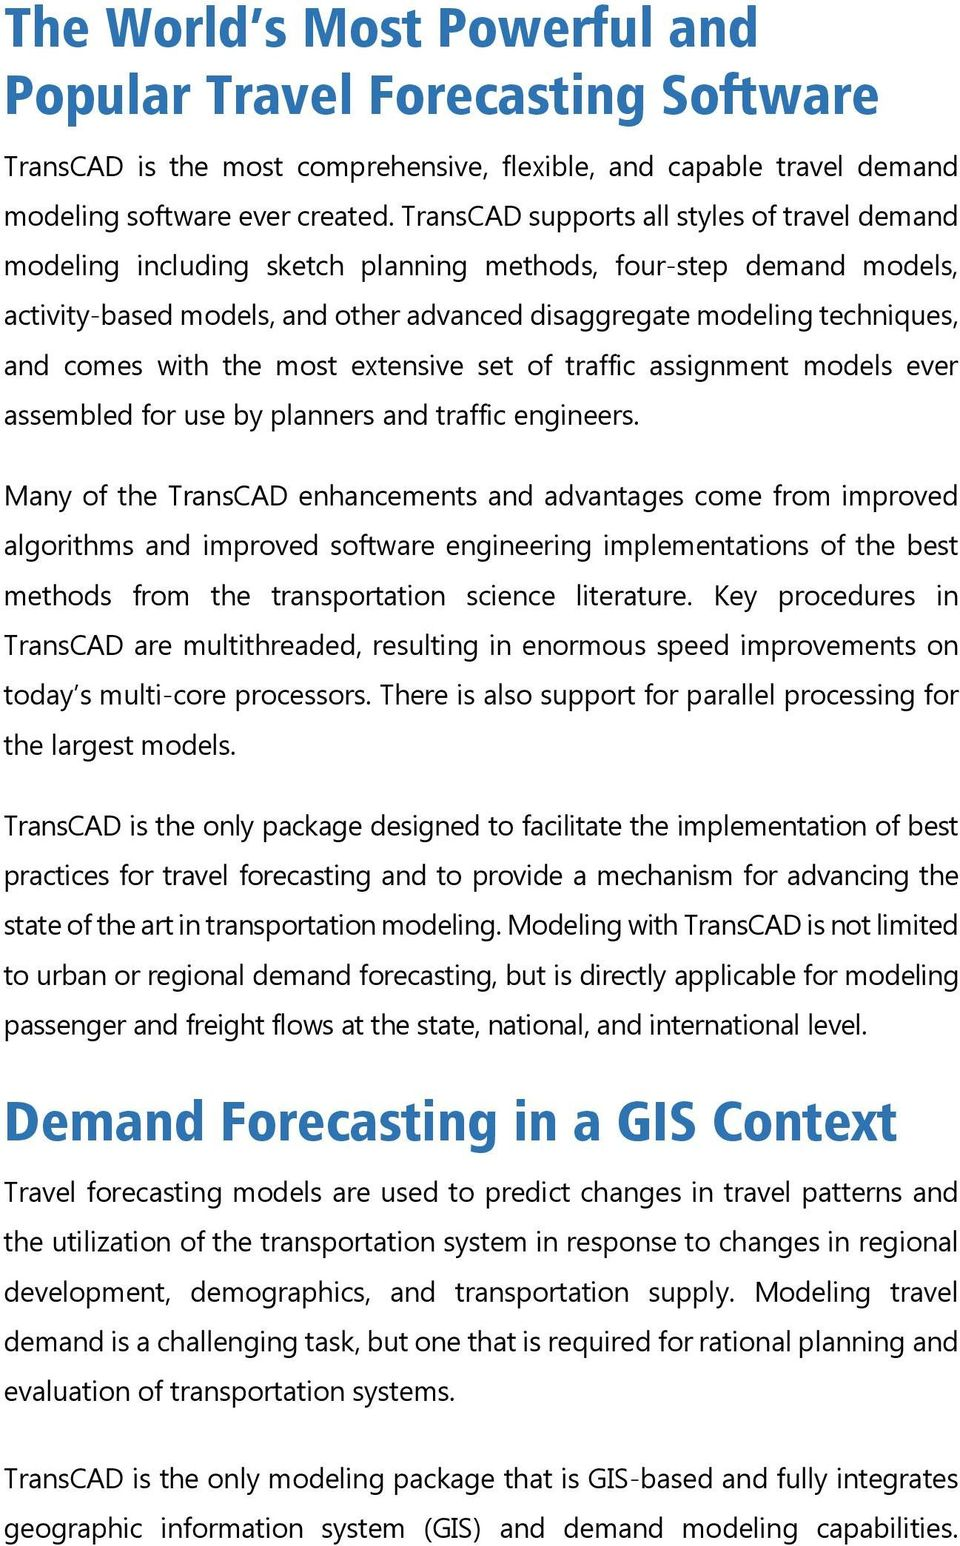 The World s Most Powerful and Popular Travel Forecasting